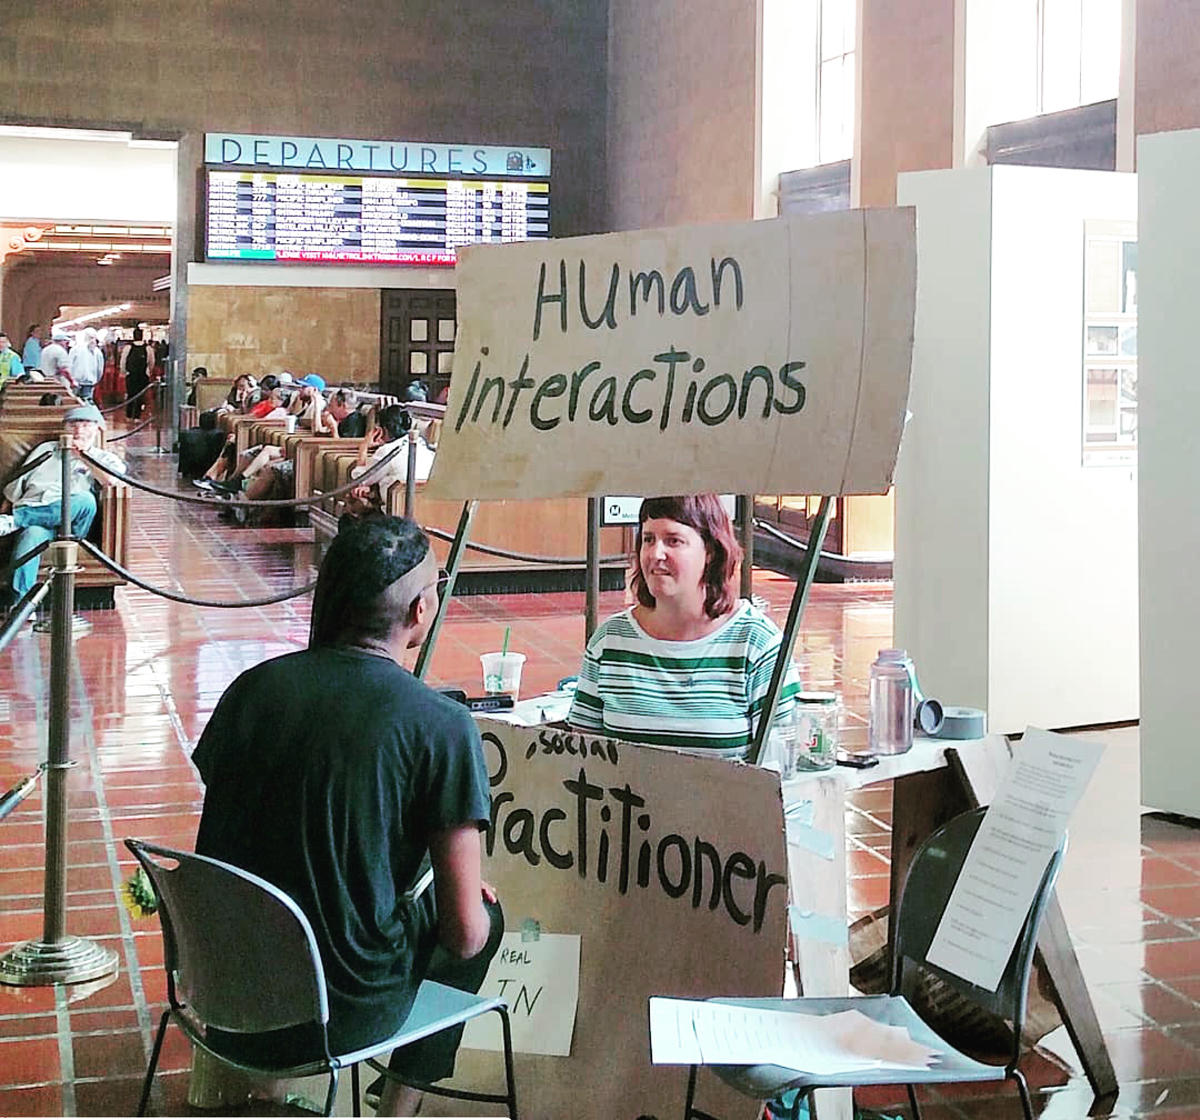 Human Interactions 5 Cents